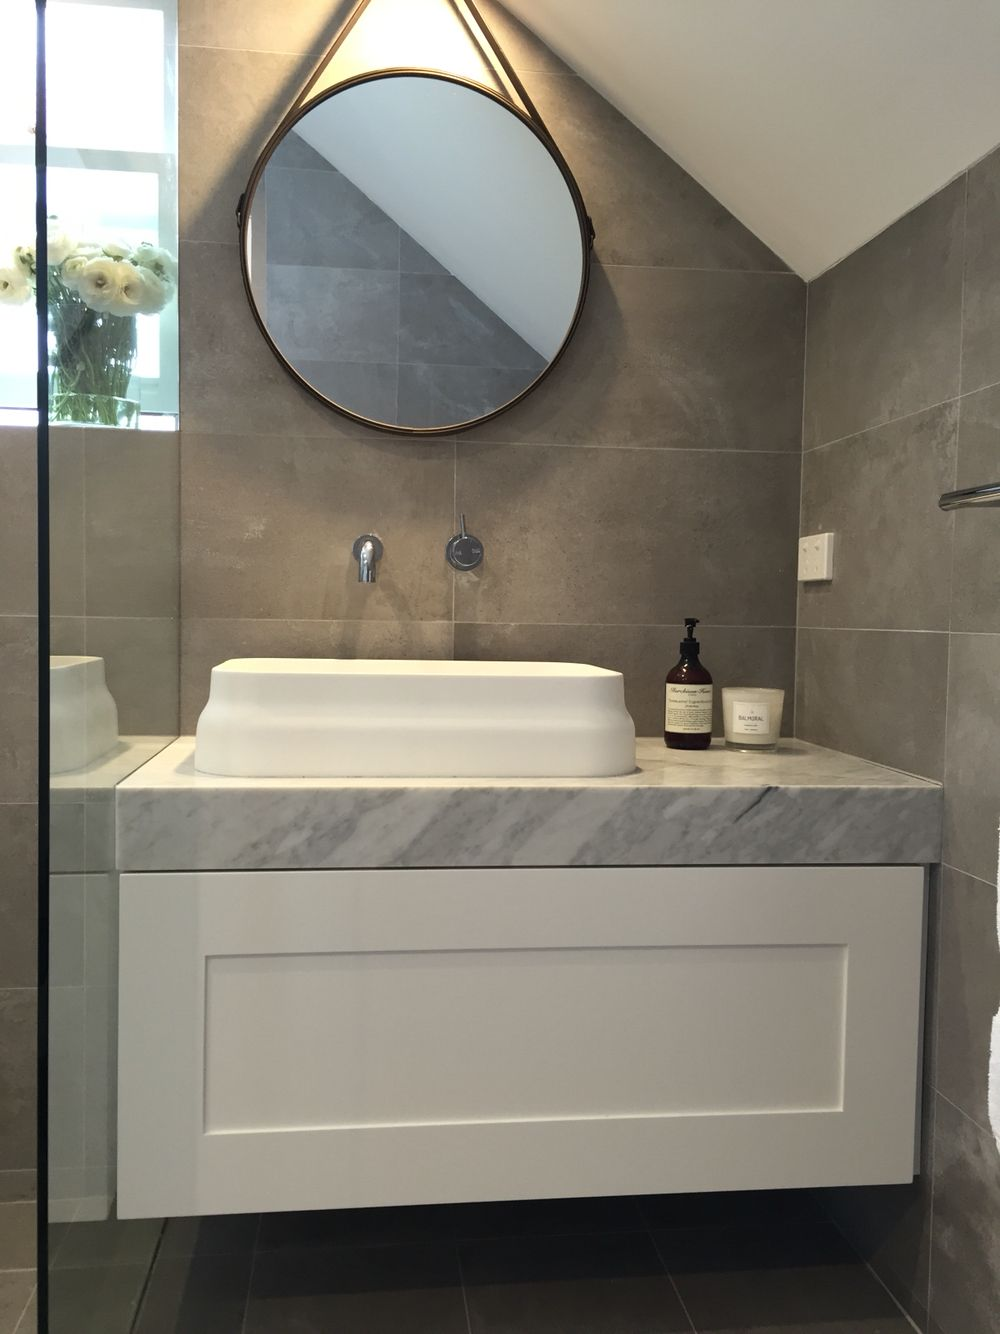 Ensuite bathroom grey and white carrara marble vanity - Round mirror over bathroom vanity ...